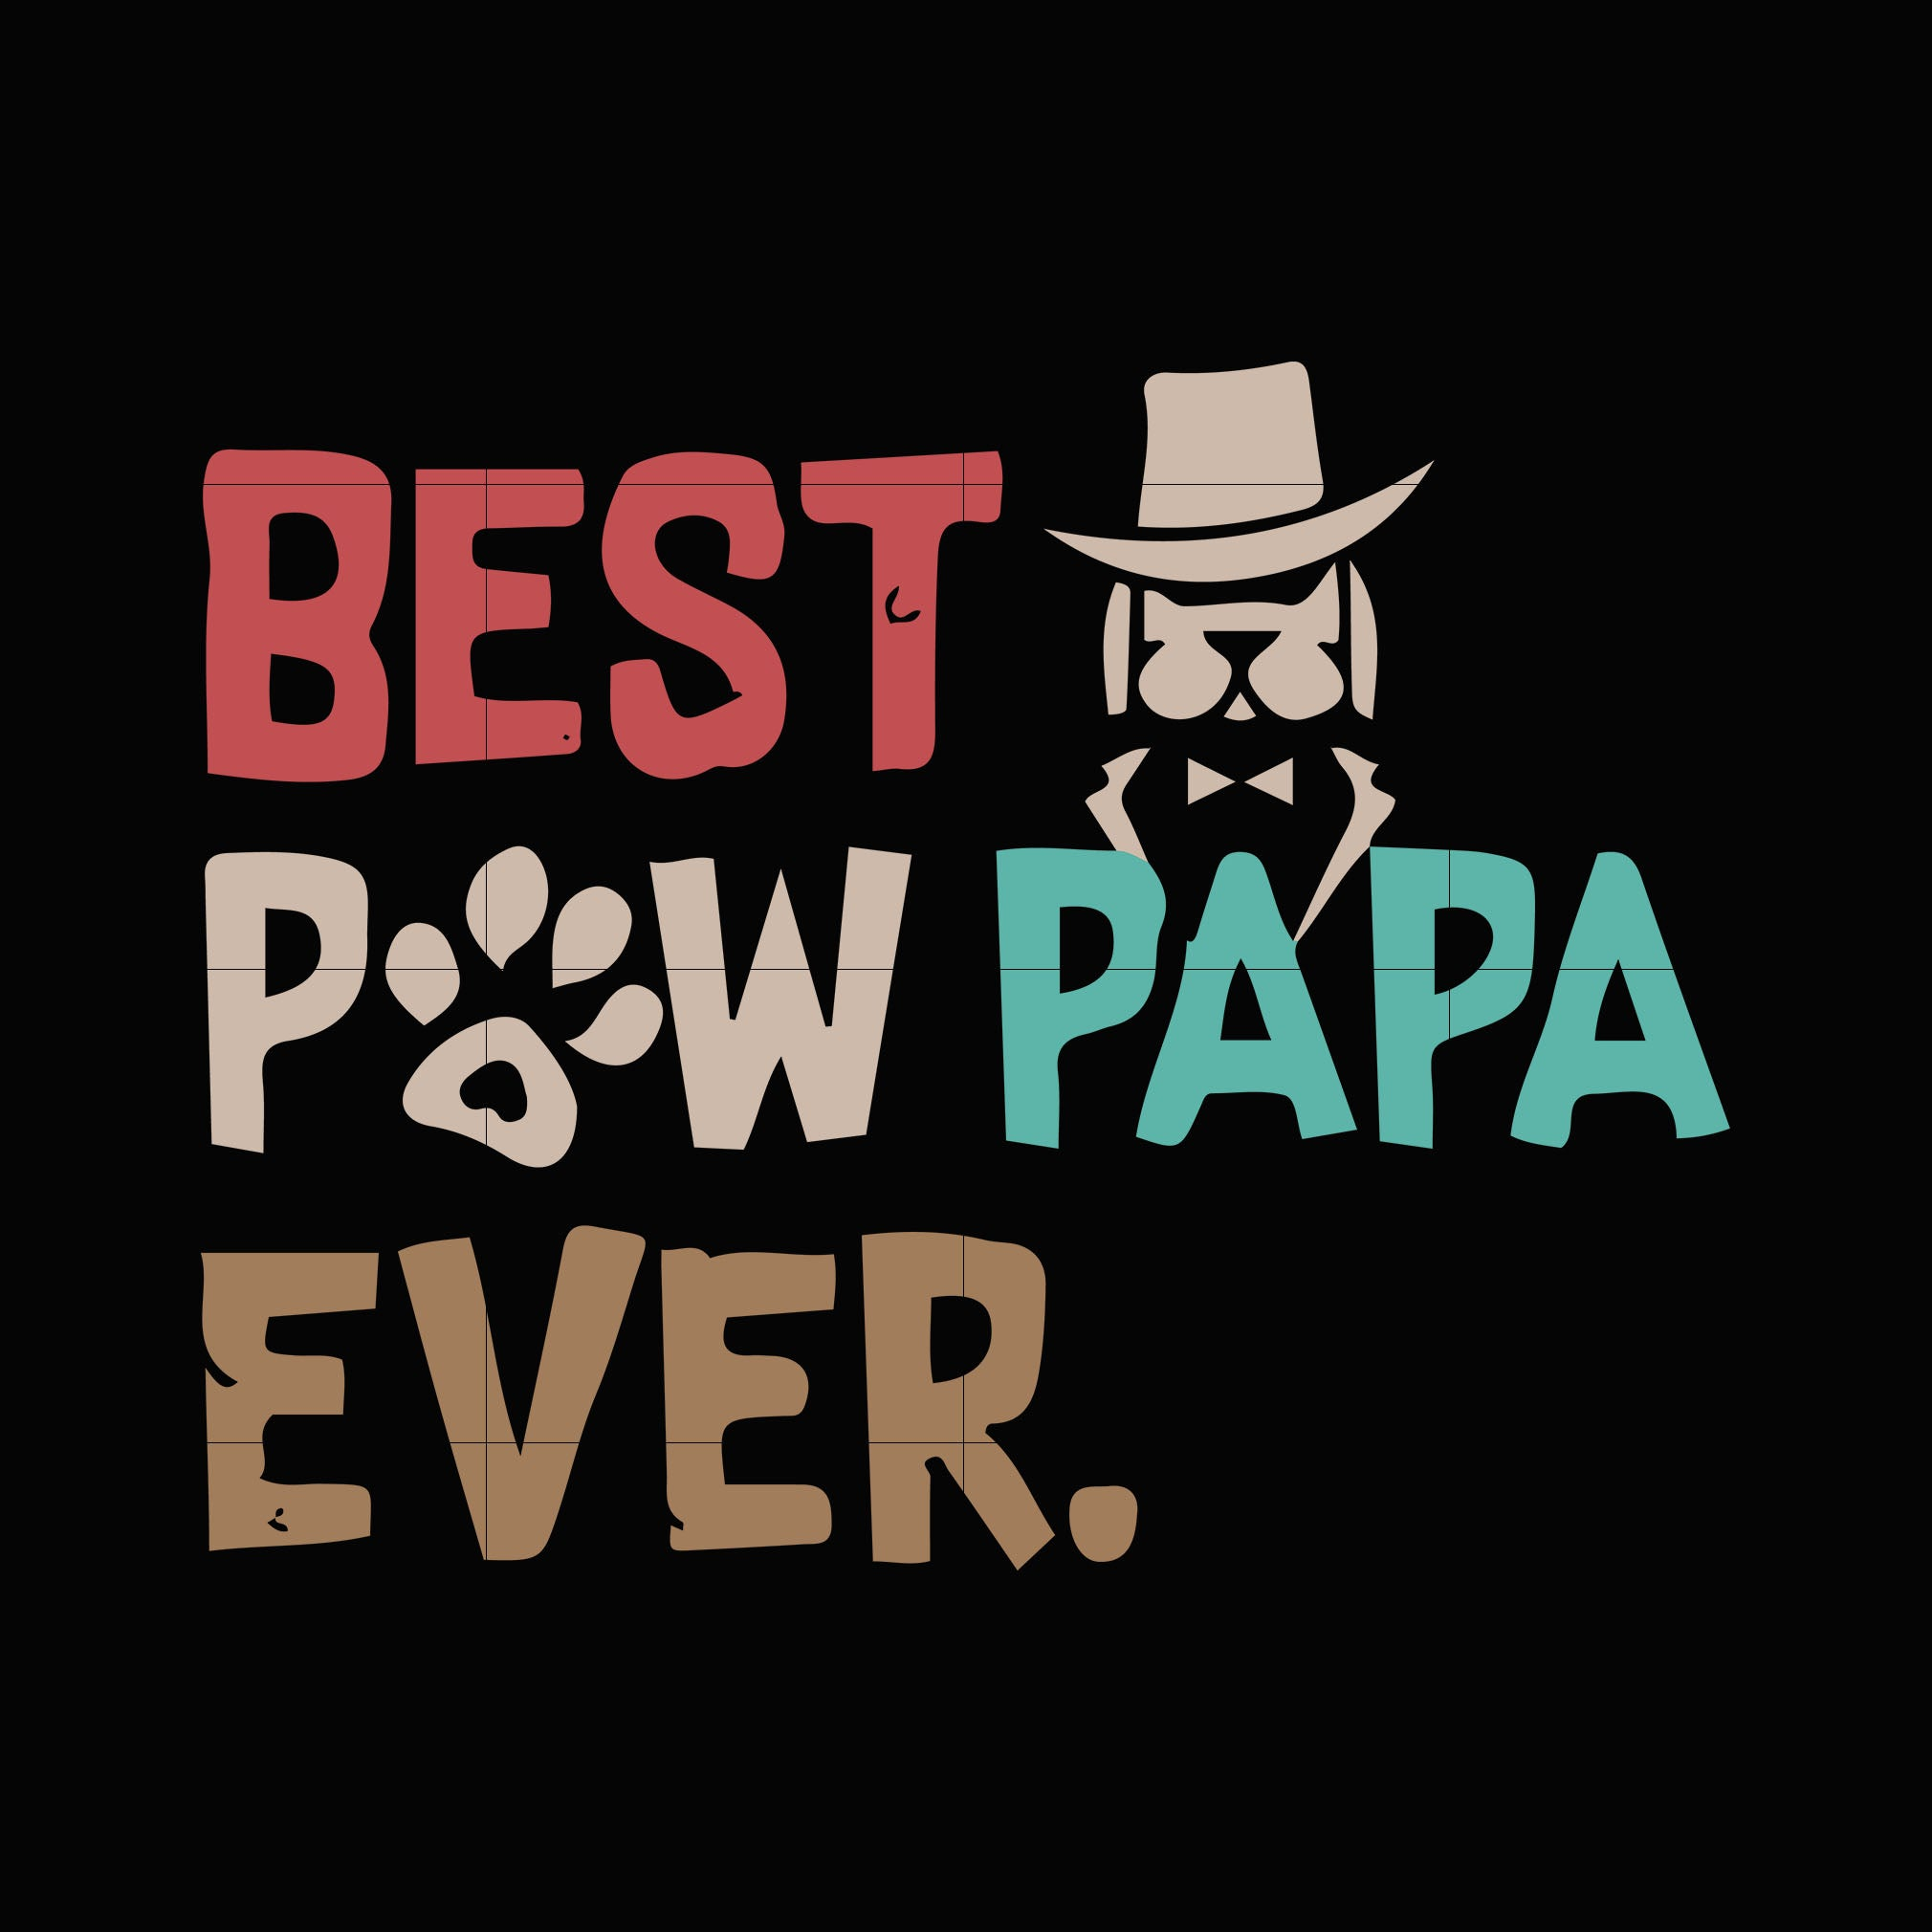 Best pew papa ever svg,dxf,eps,png digital file